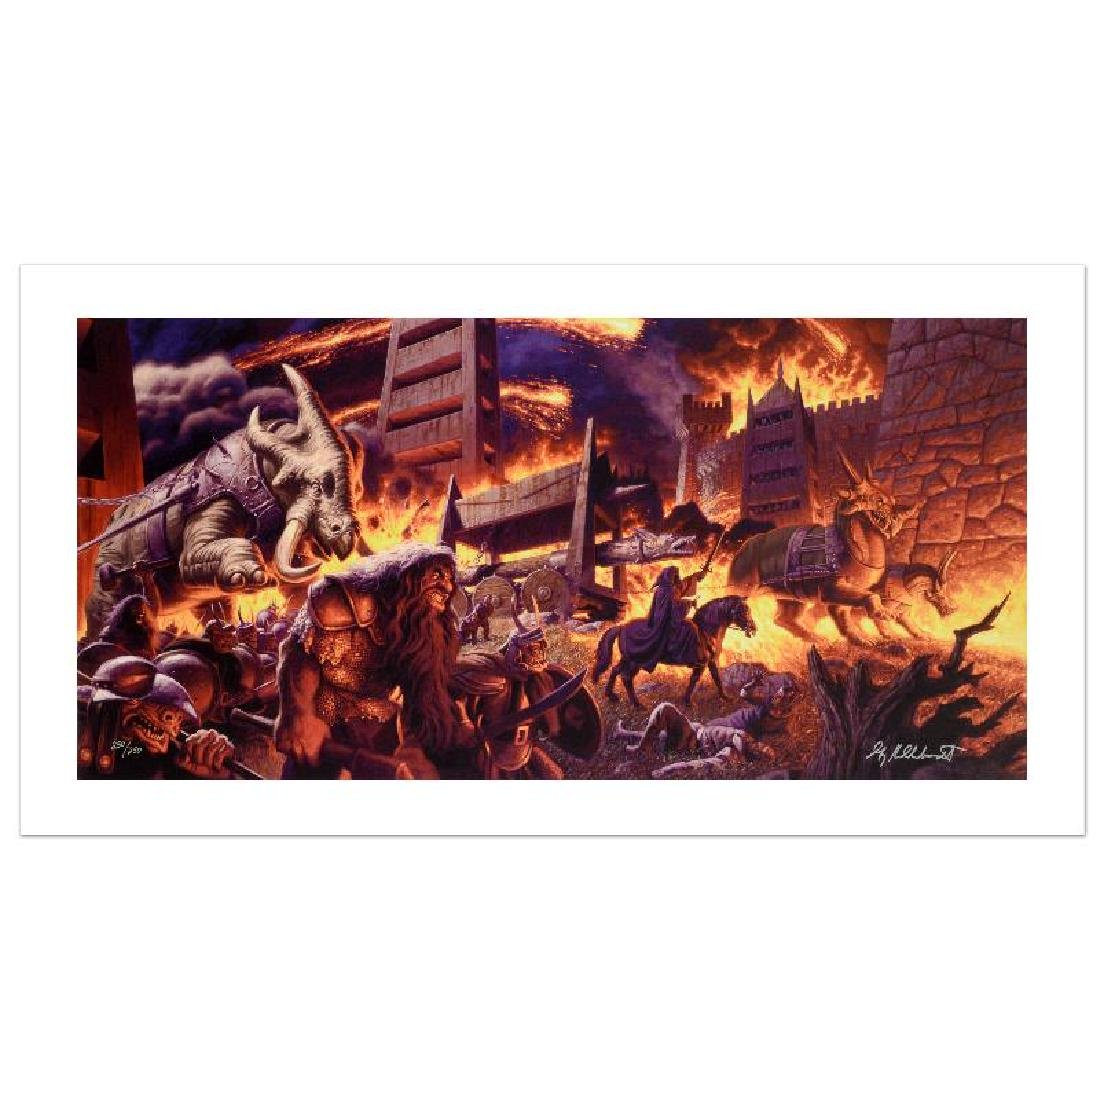 """The Siege Of Minas Tirith"" Limited Edition Giclee on"